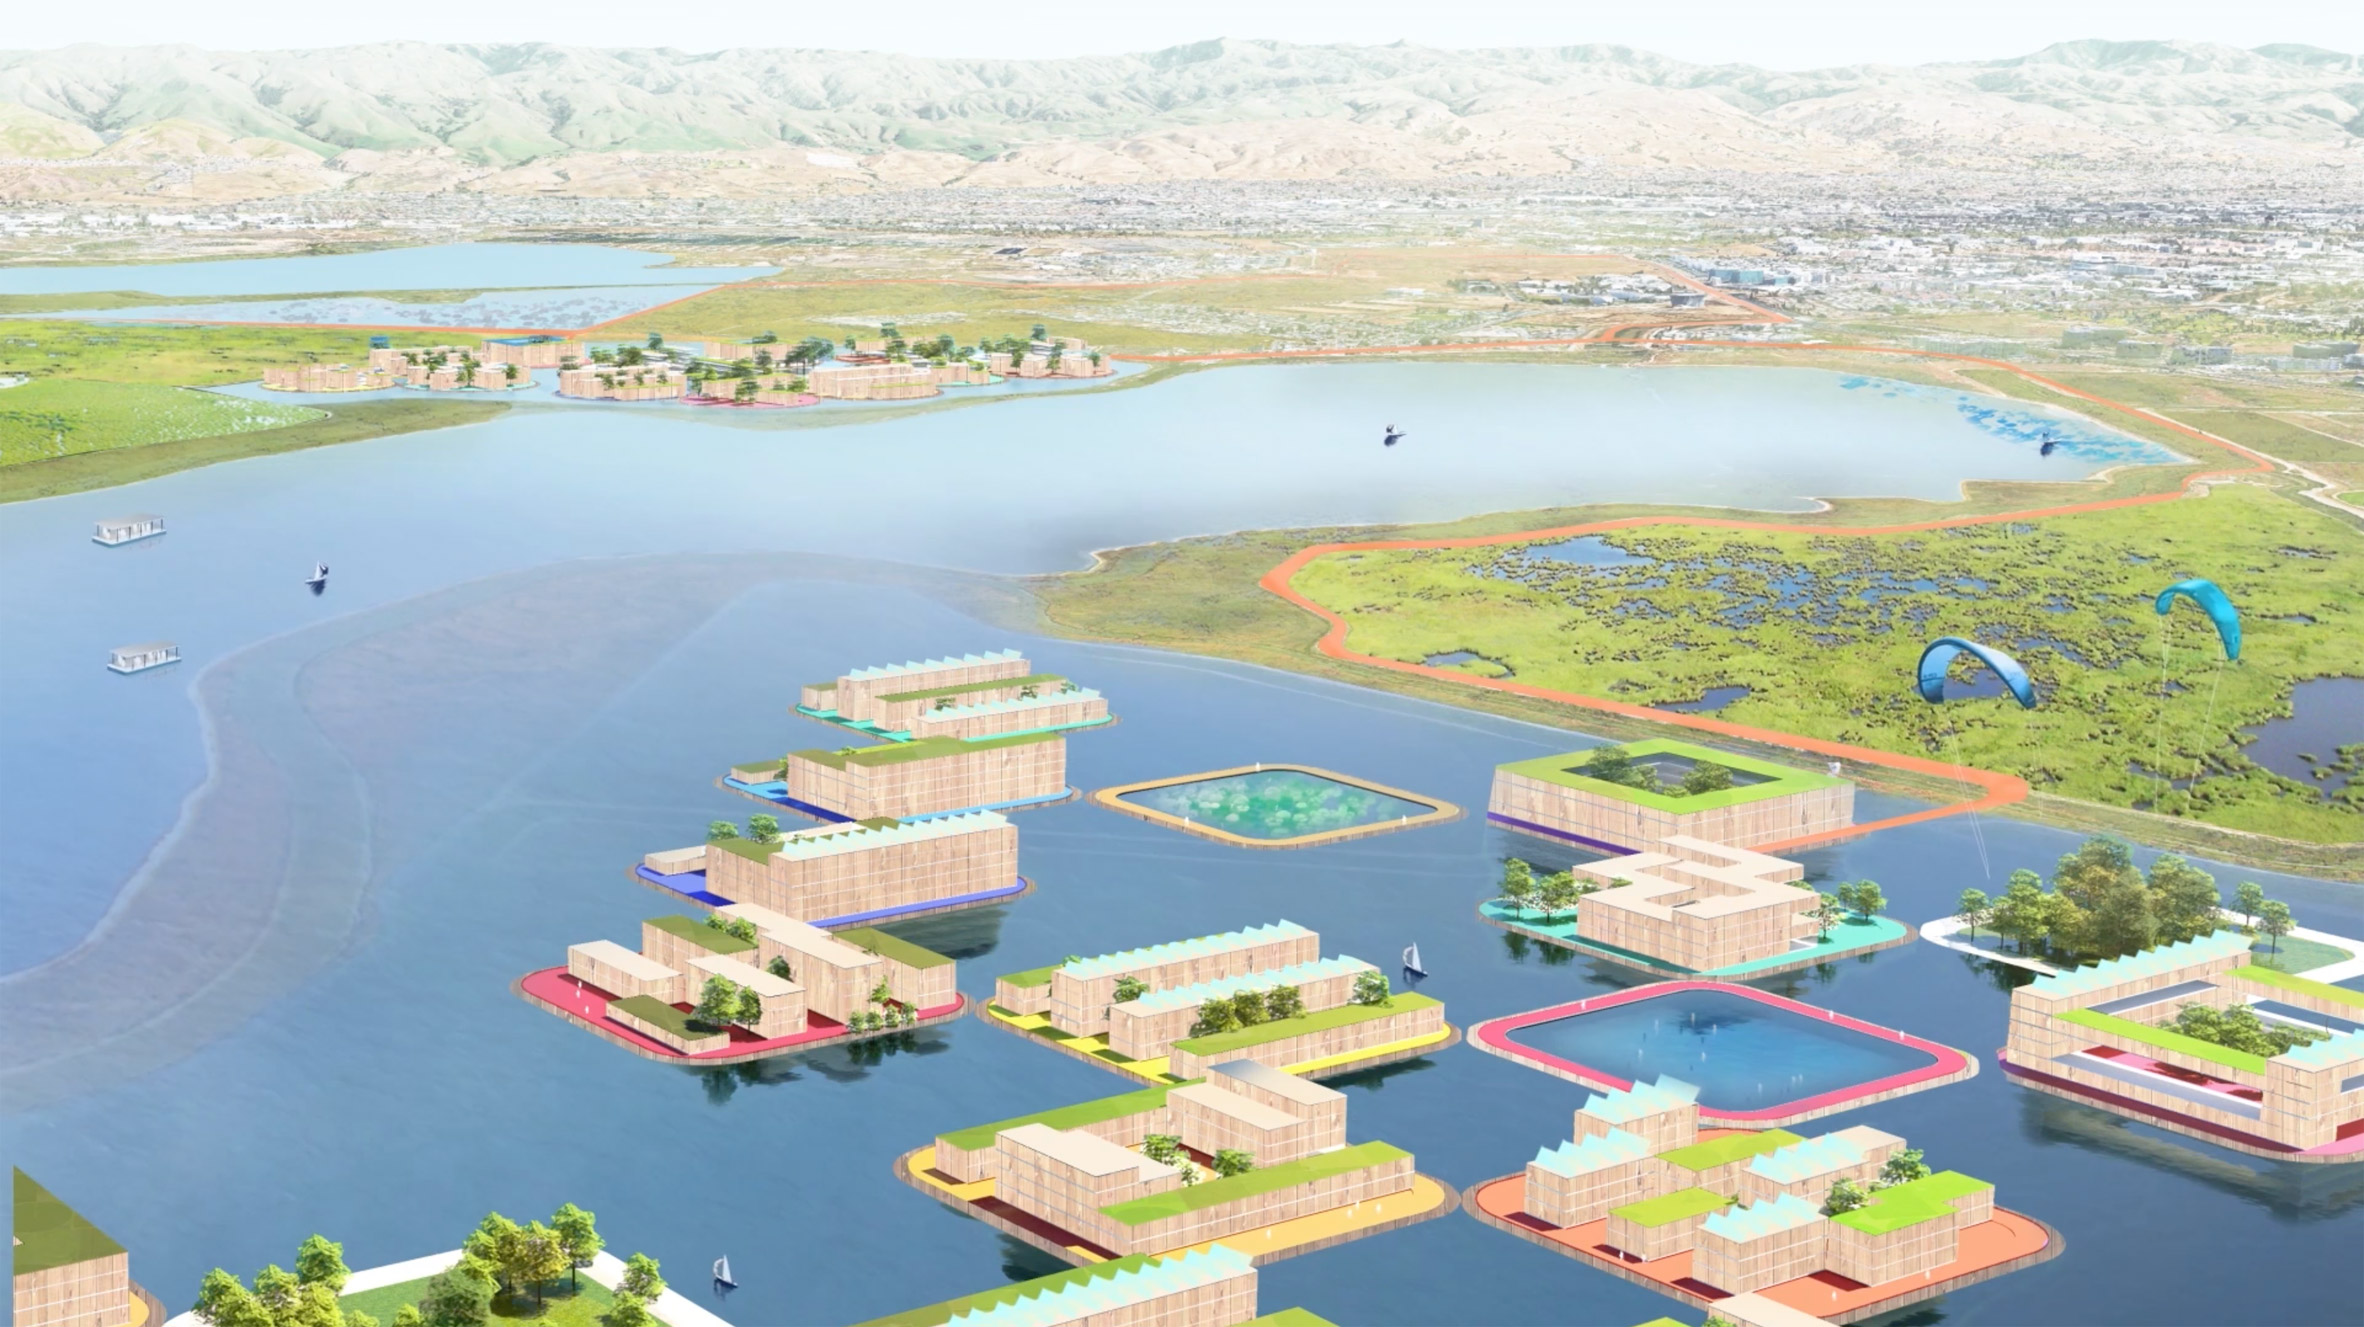 BIG unveils scheme to protect San Francisco creek from flooding